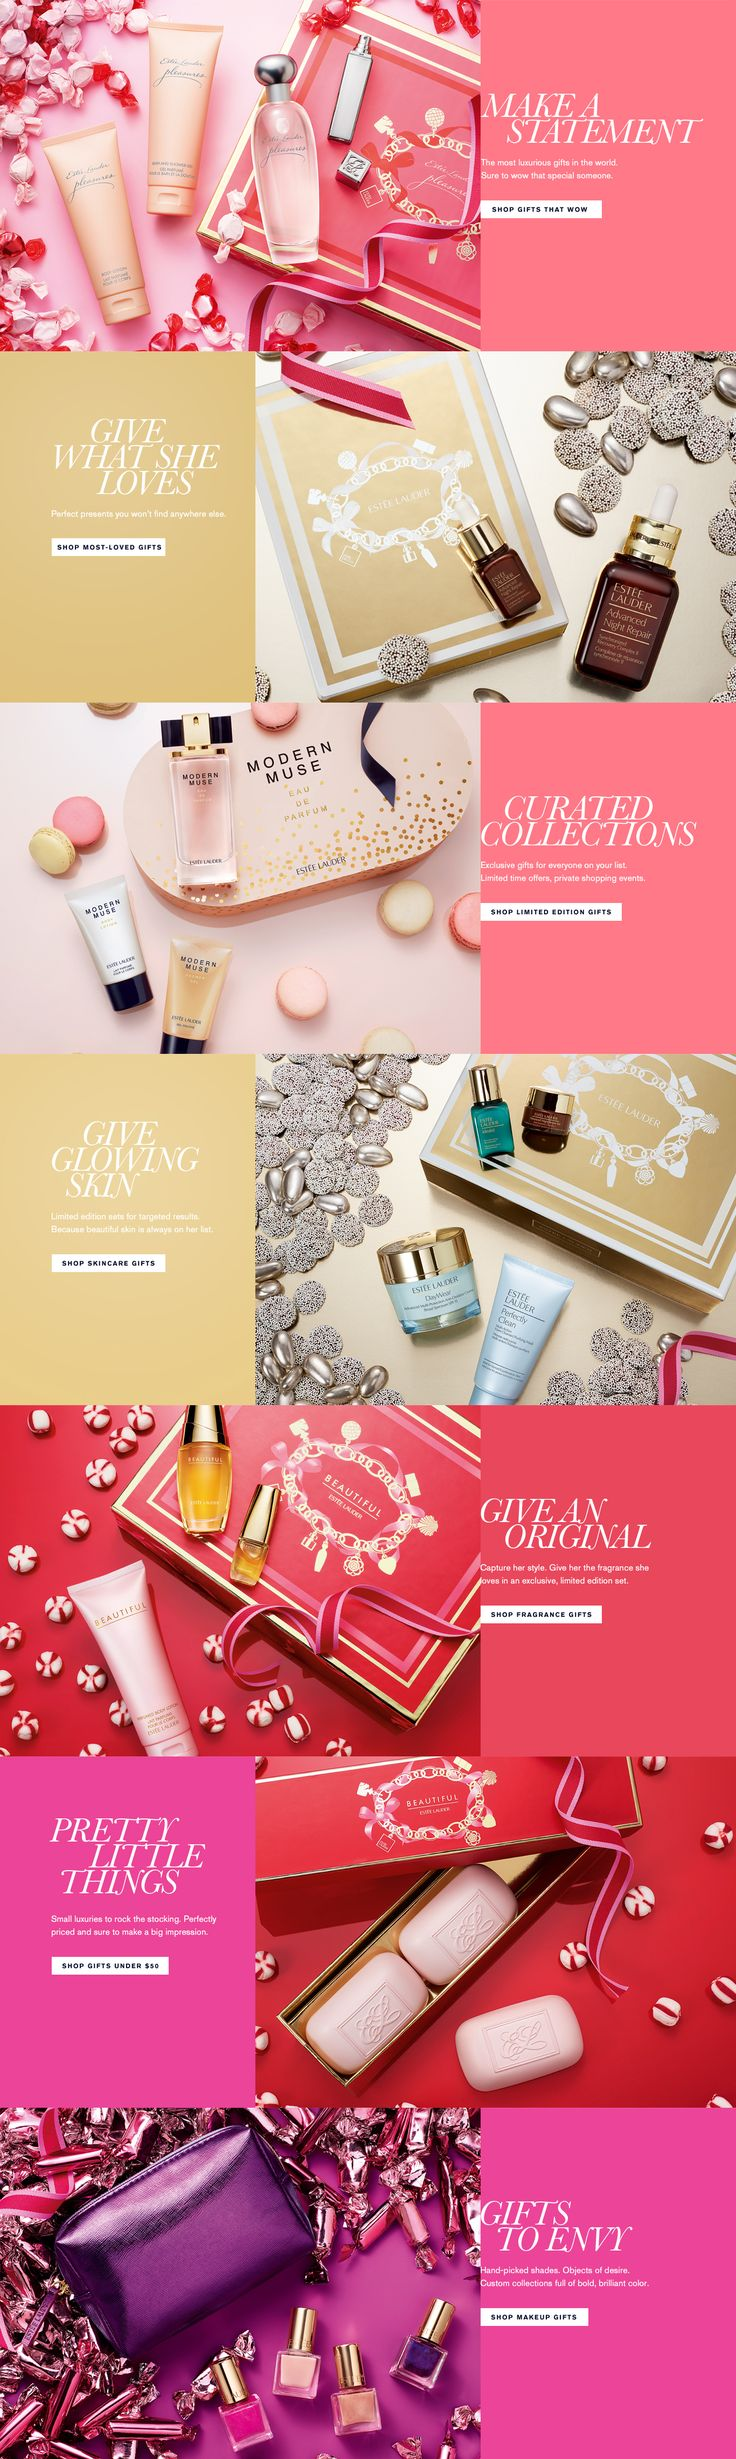 http://www.esteelauder.com/boutiques/holiday/index.tmpl?cm_mmc=email-_-Dec-_-1222_Onight_Shipping-_-shopnow